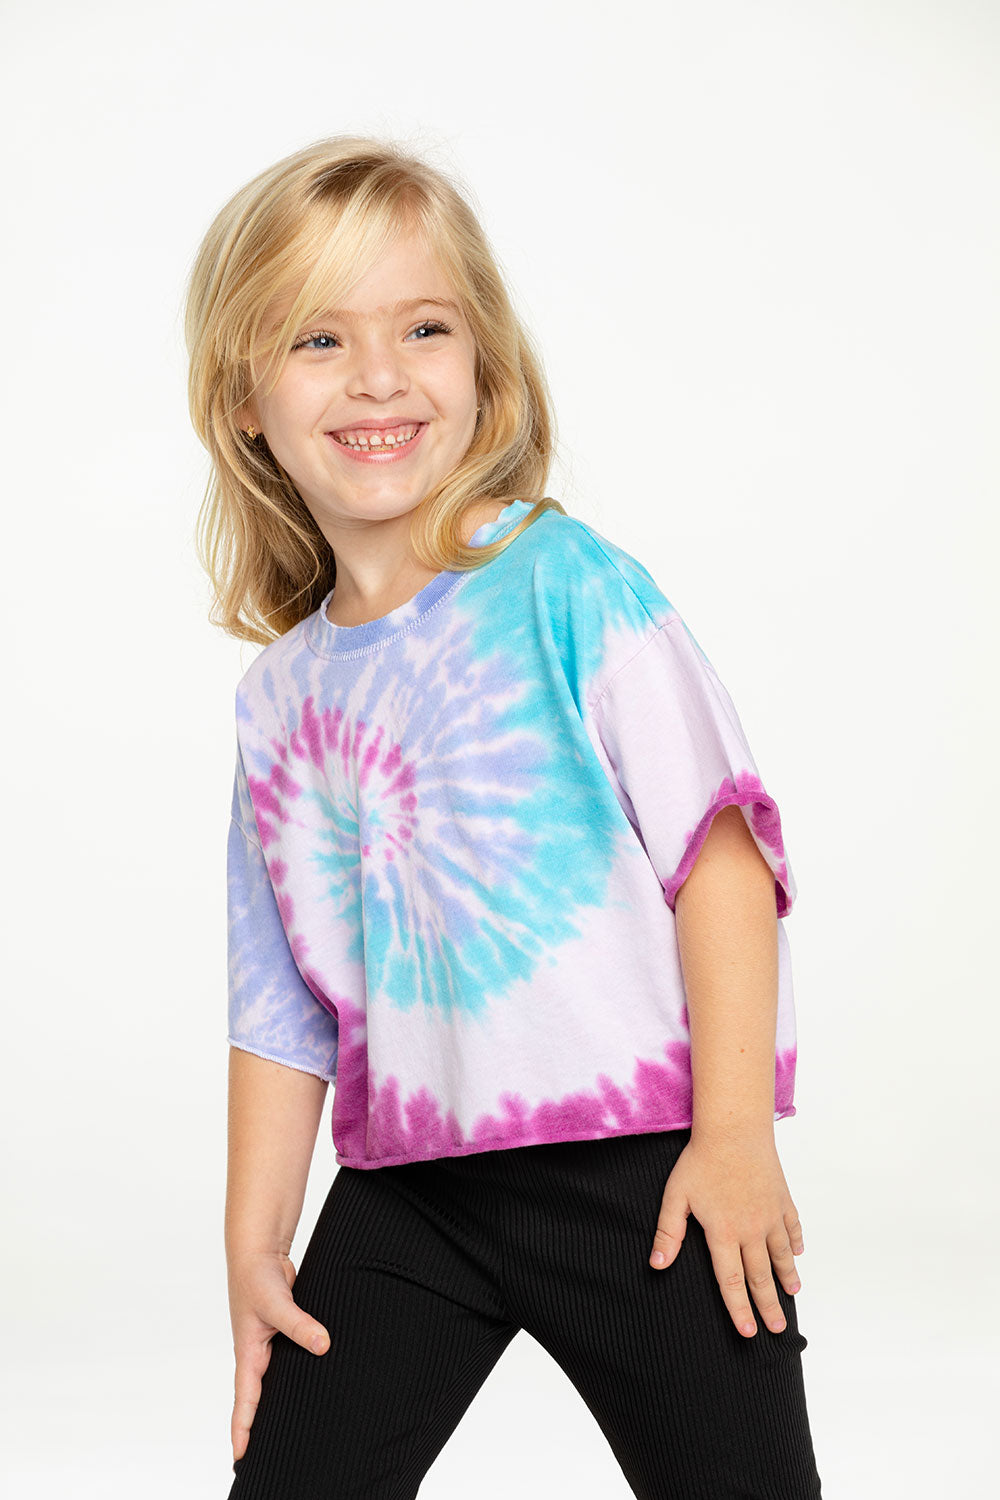 Girls RPET Vintage Jersey Oversized Tee GIRLS - chaserbrand